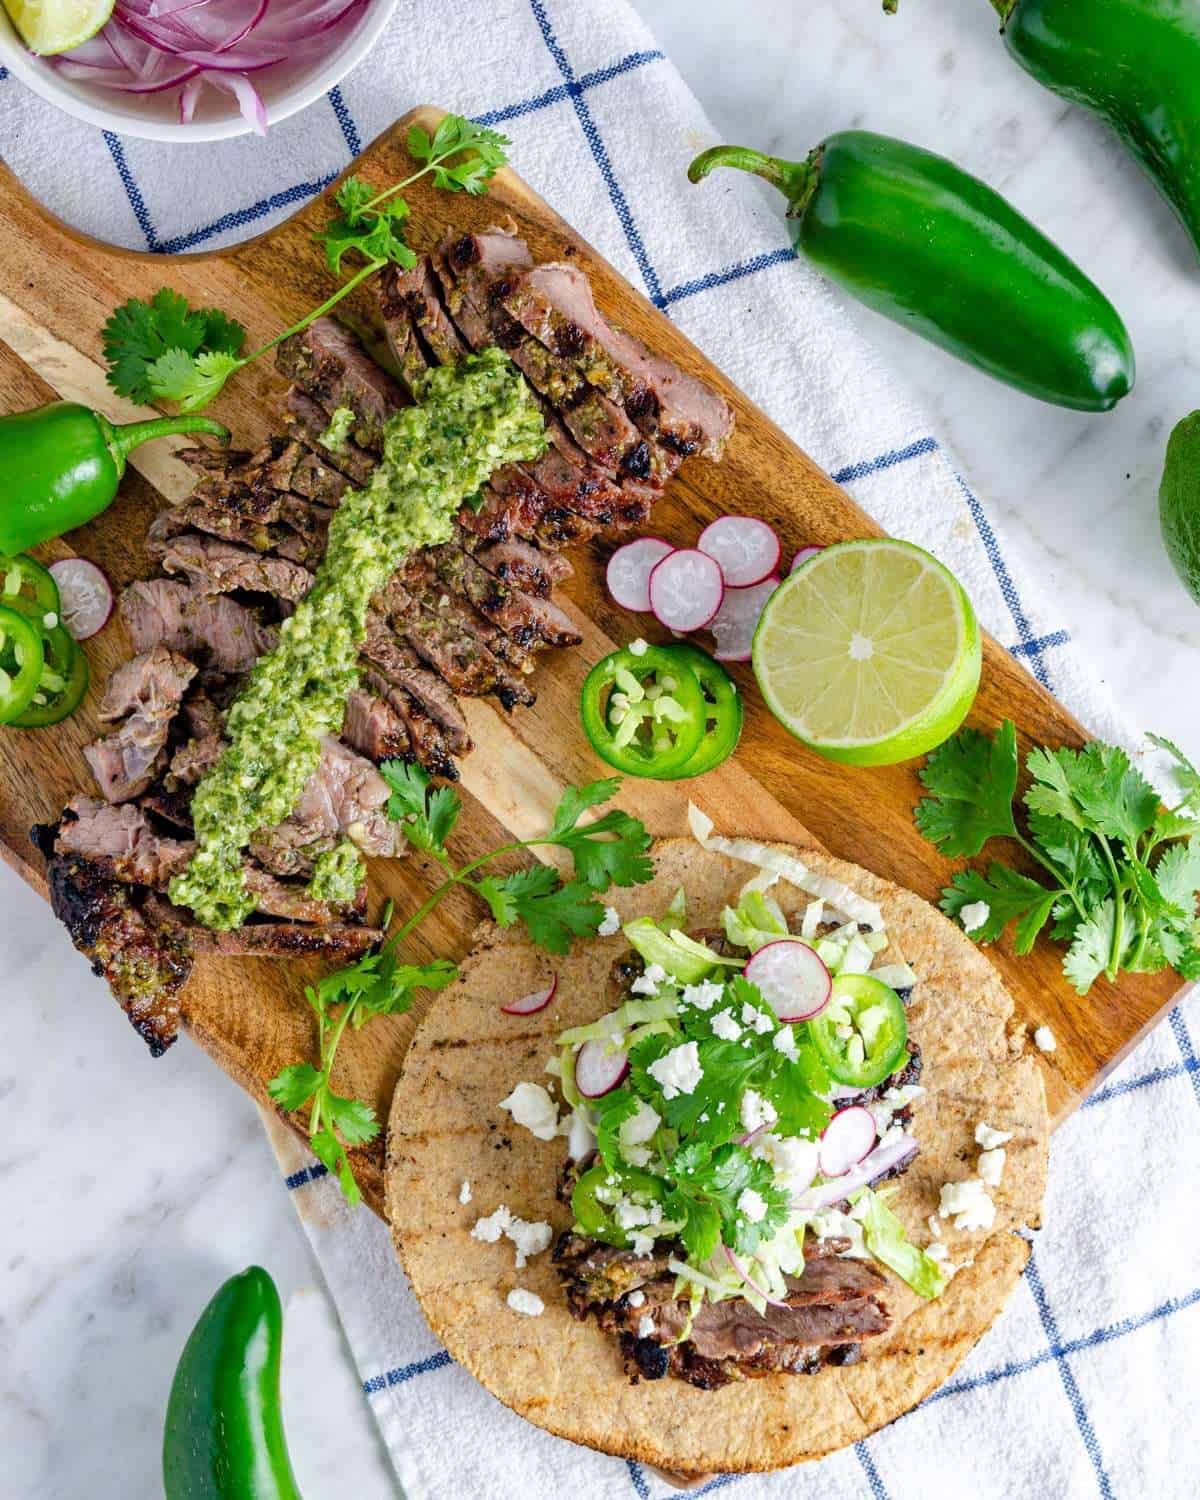 A platter of chimichurri steal fajitas on a low carb tortilla from above